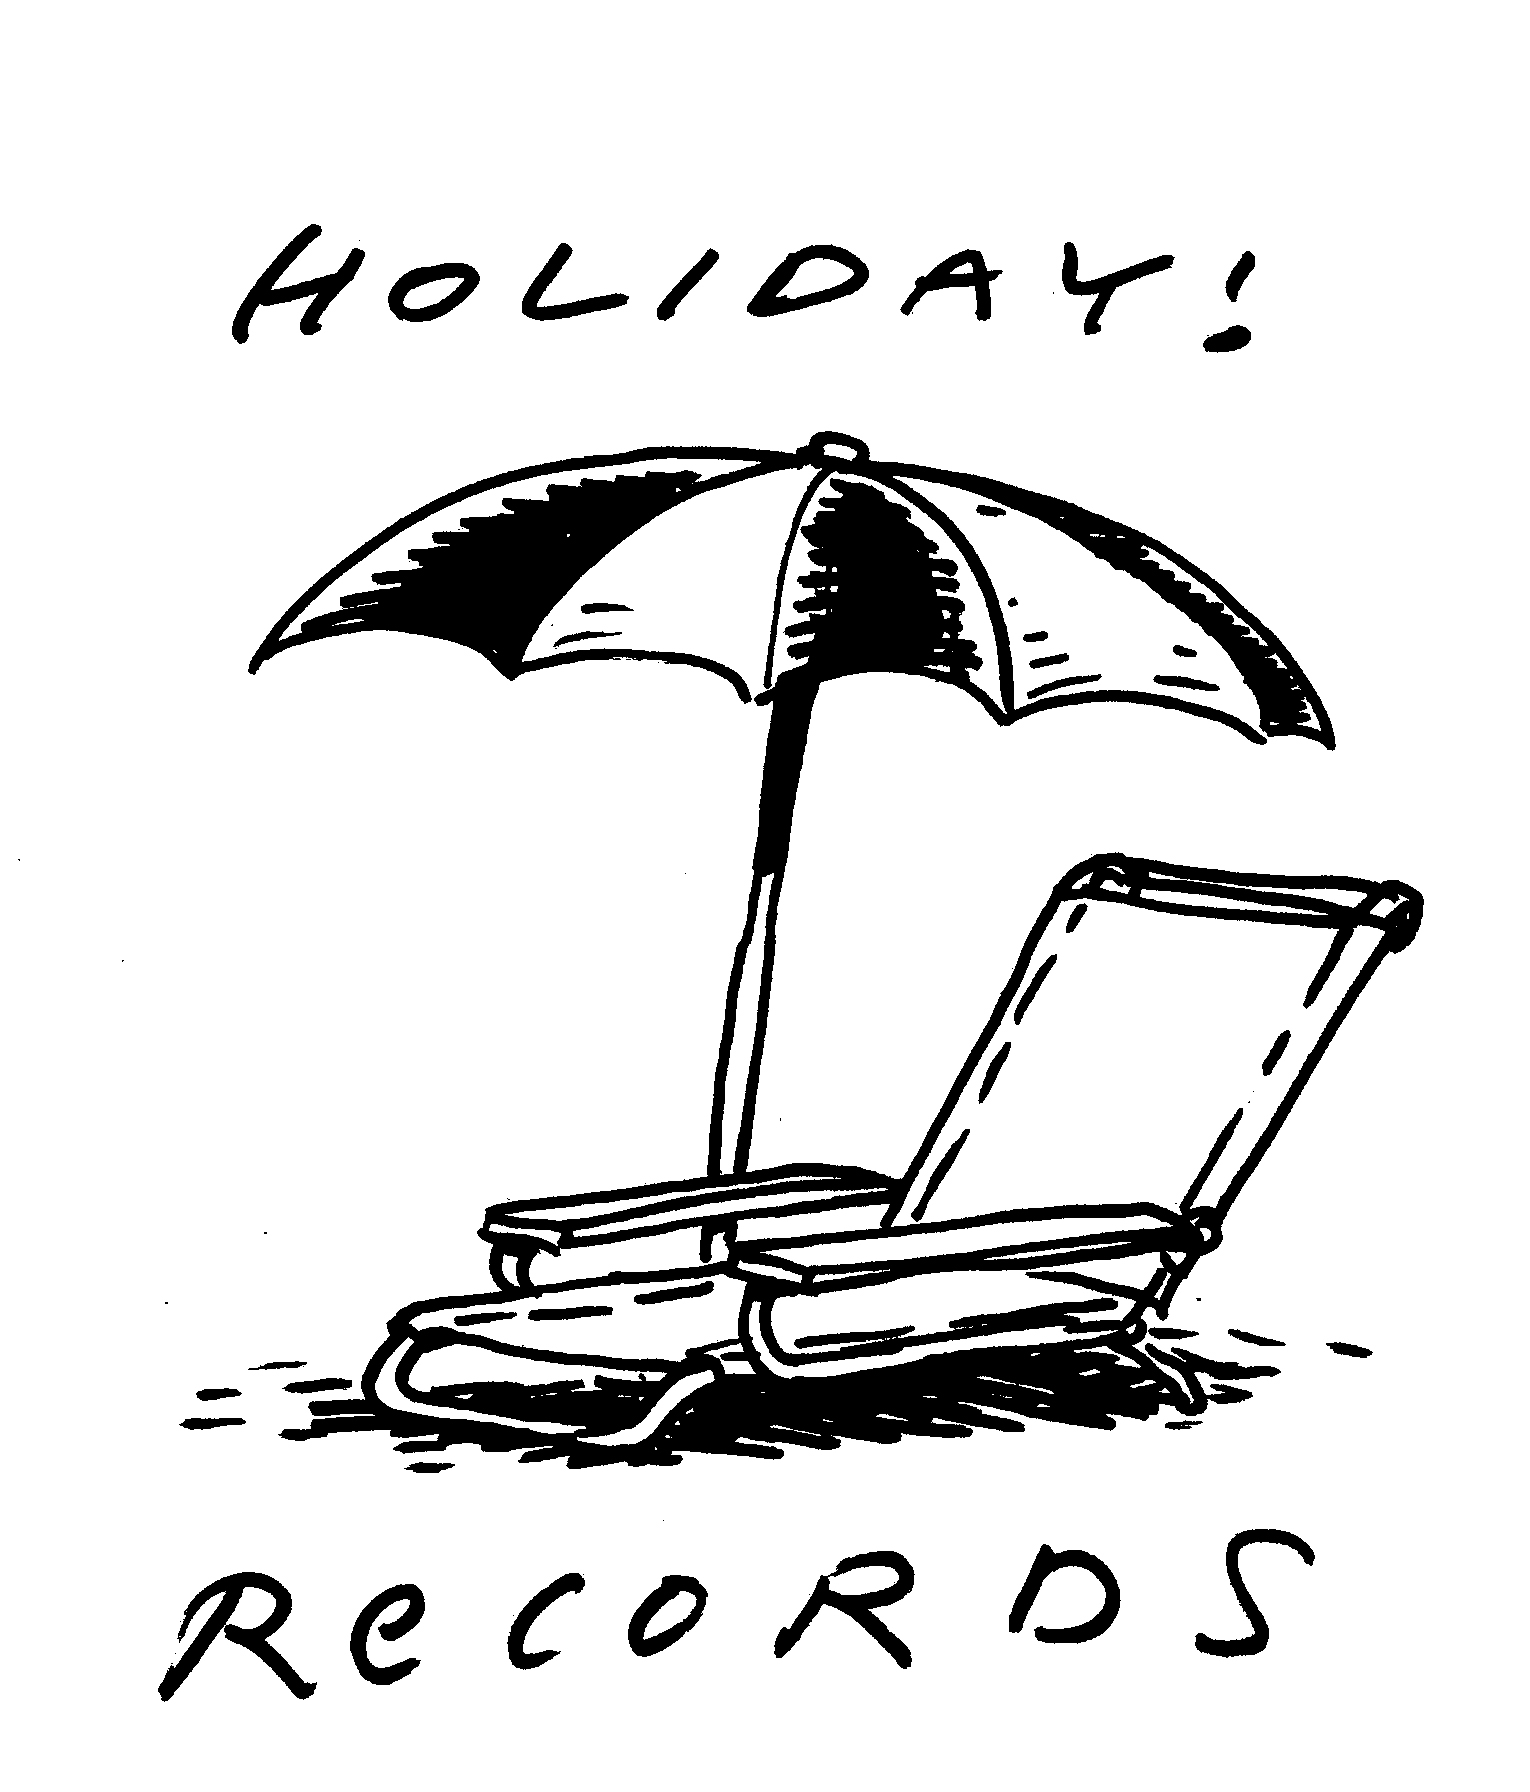 http://rooftop.cc/news/2017/12/07/holiday_records_logo.jpg